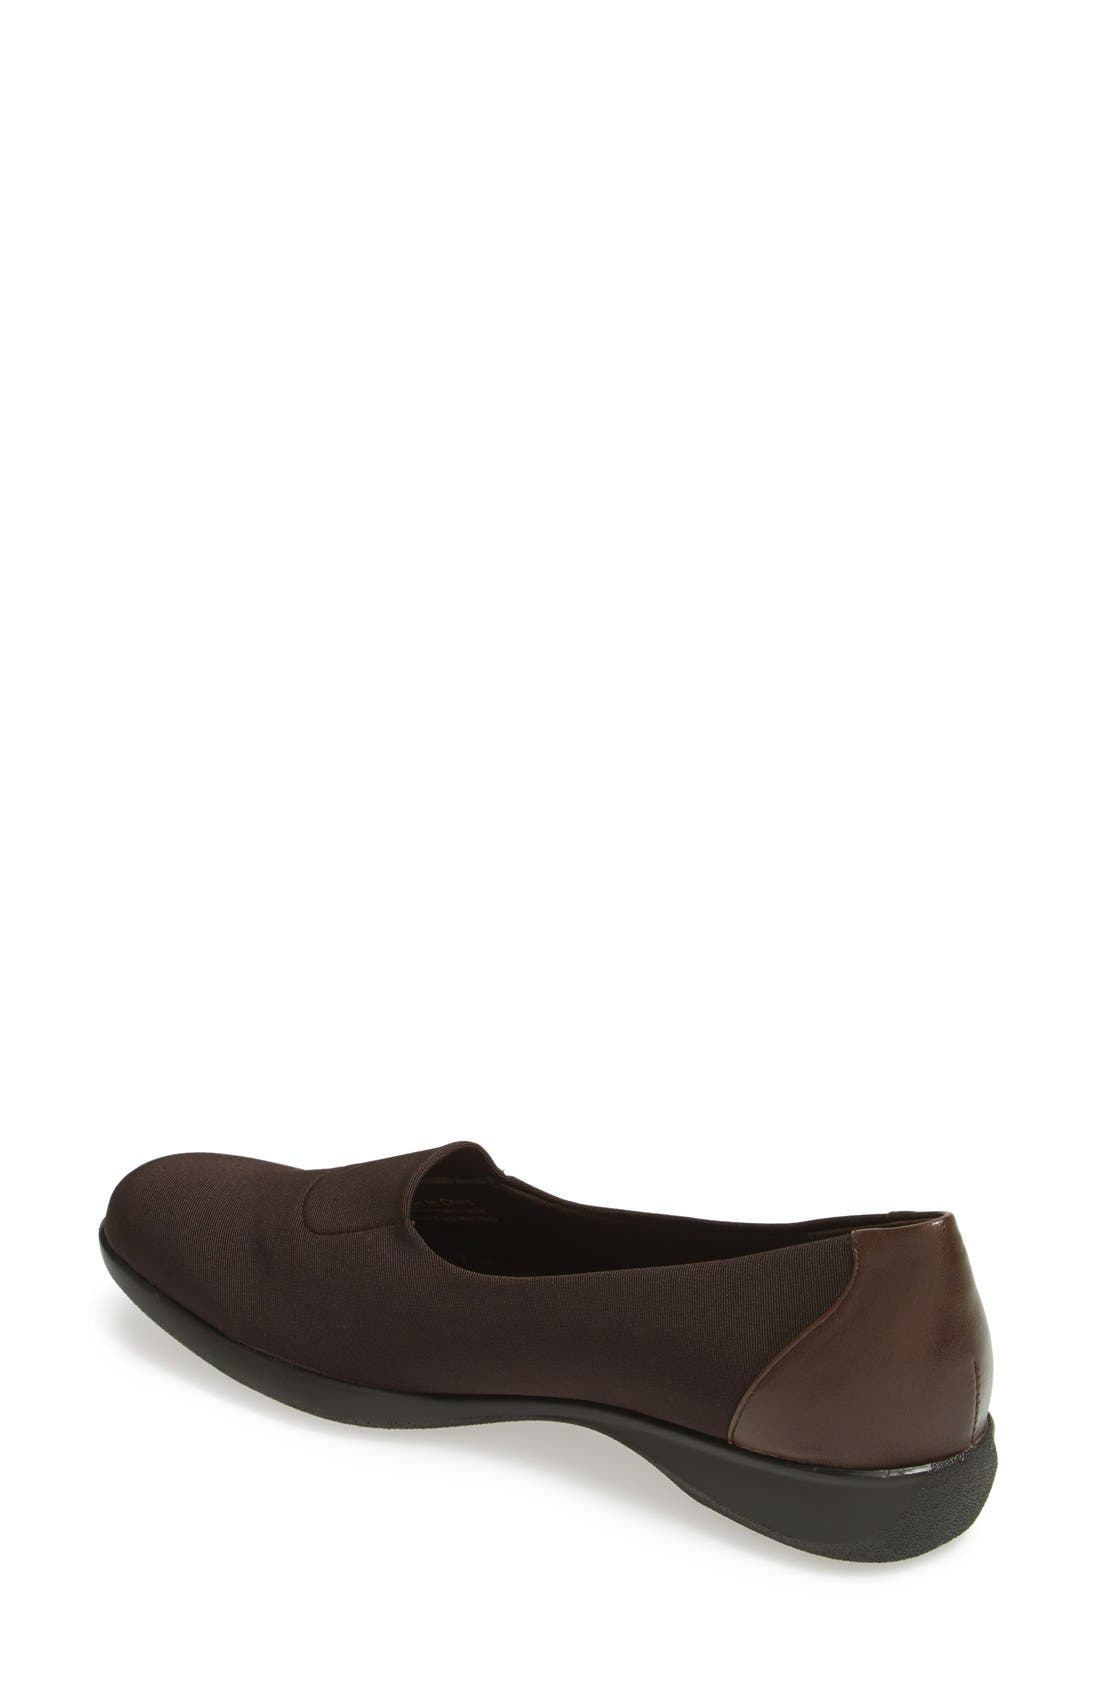 'Signature Jake' Slip On,                             Alternate thumbnail 4, color,                             DARK BROWN